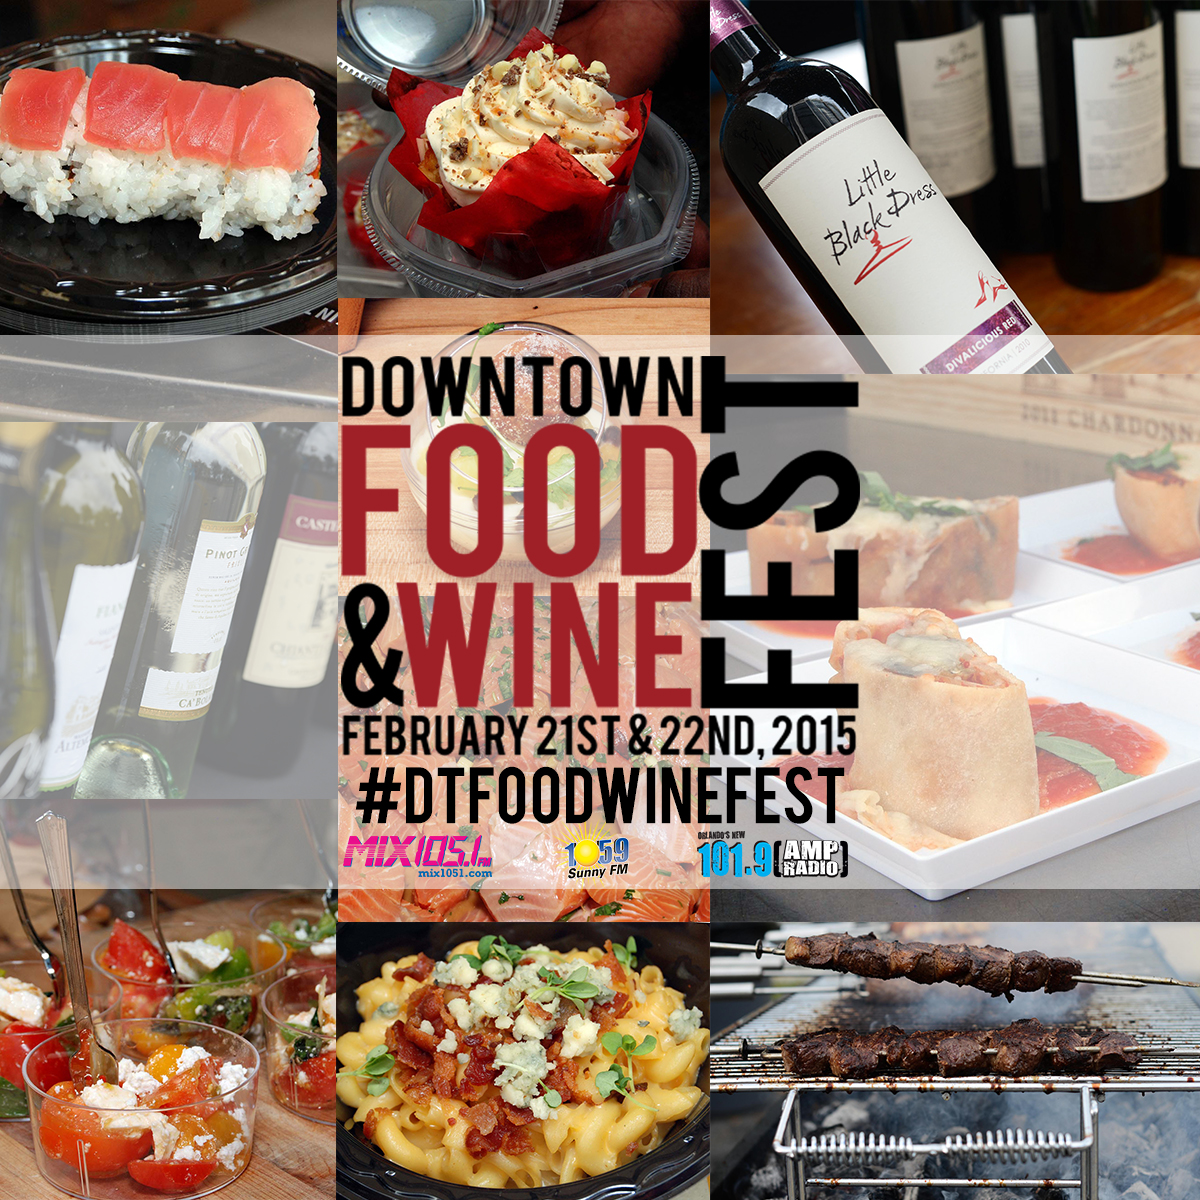 Downtown Food & Wine Fest at Lake Eola Set for February 21 and 22, 2015